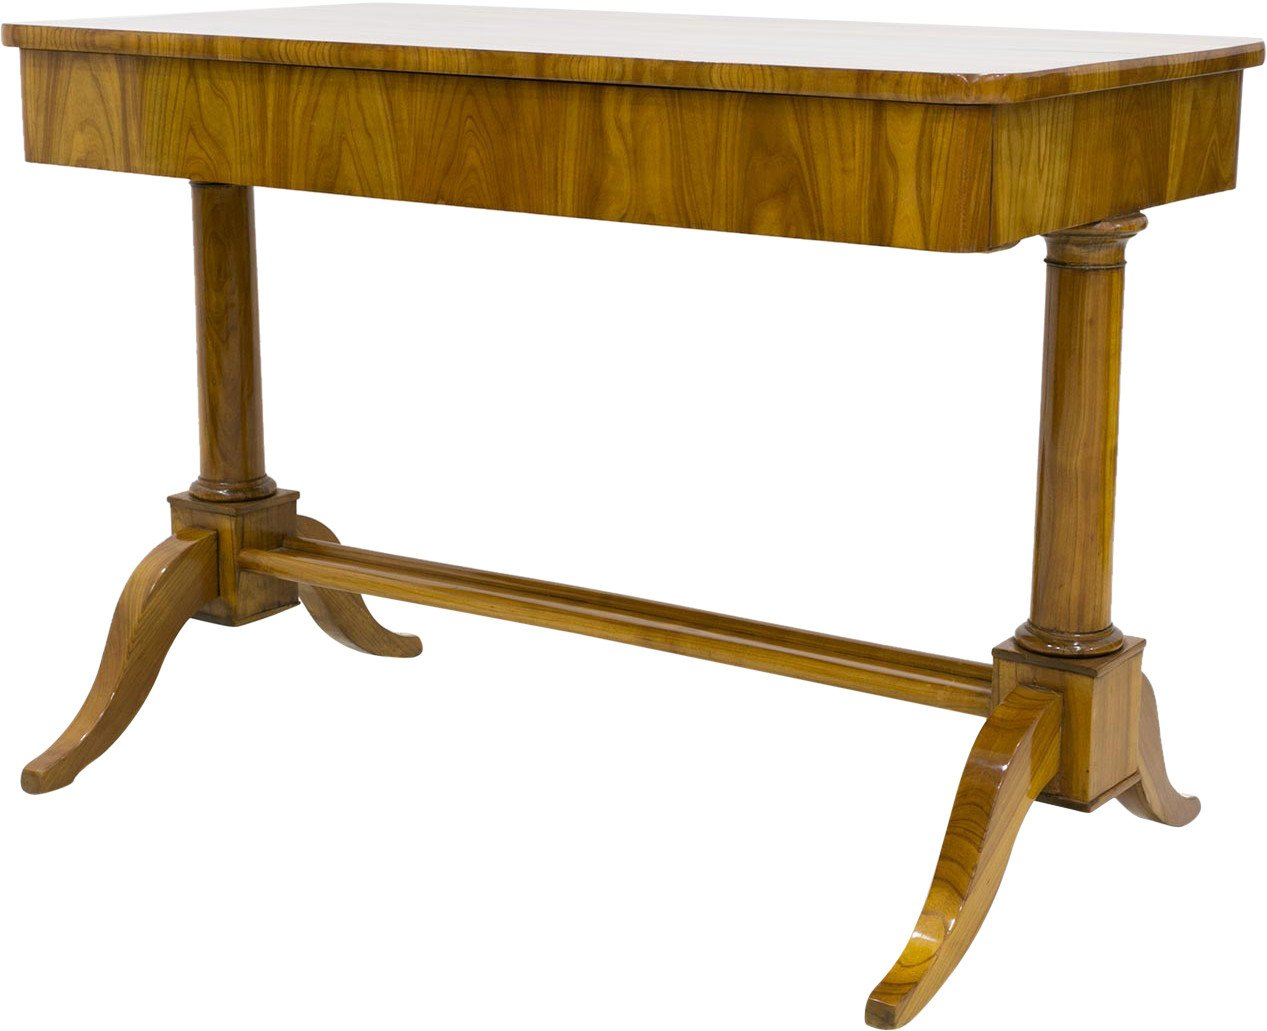 Desk, around 1830